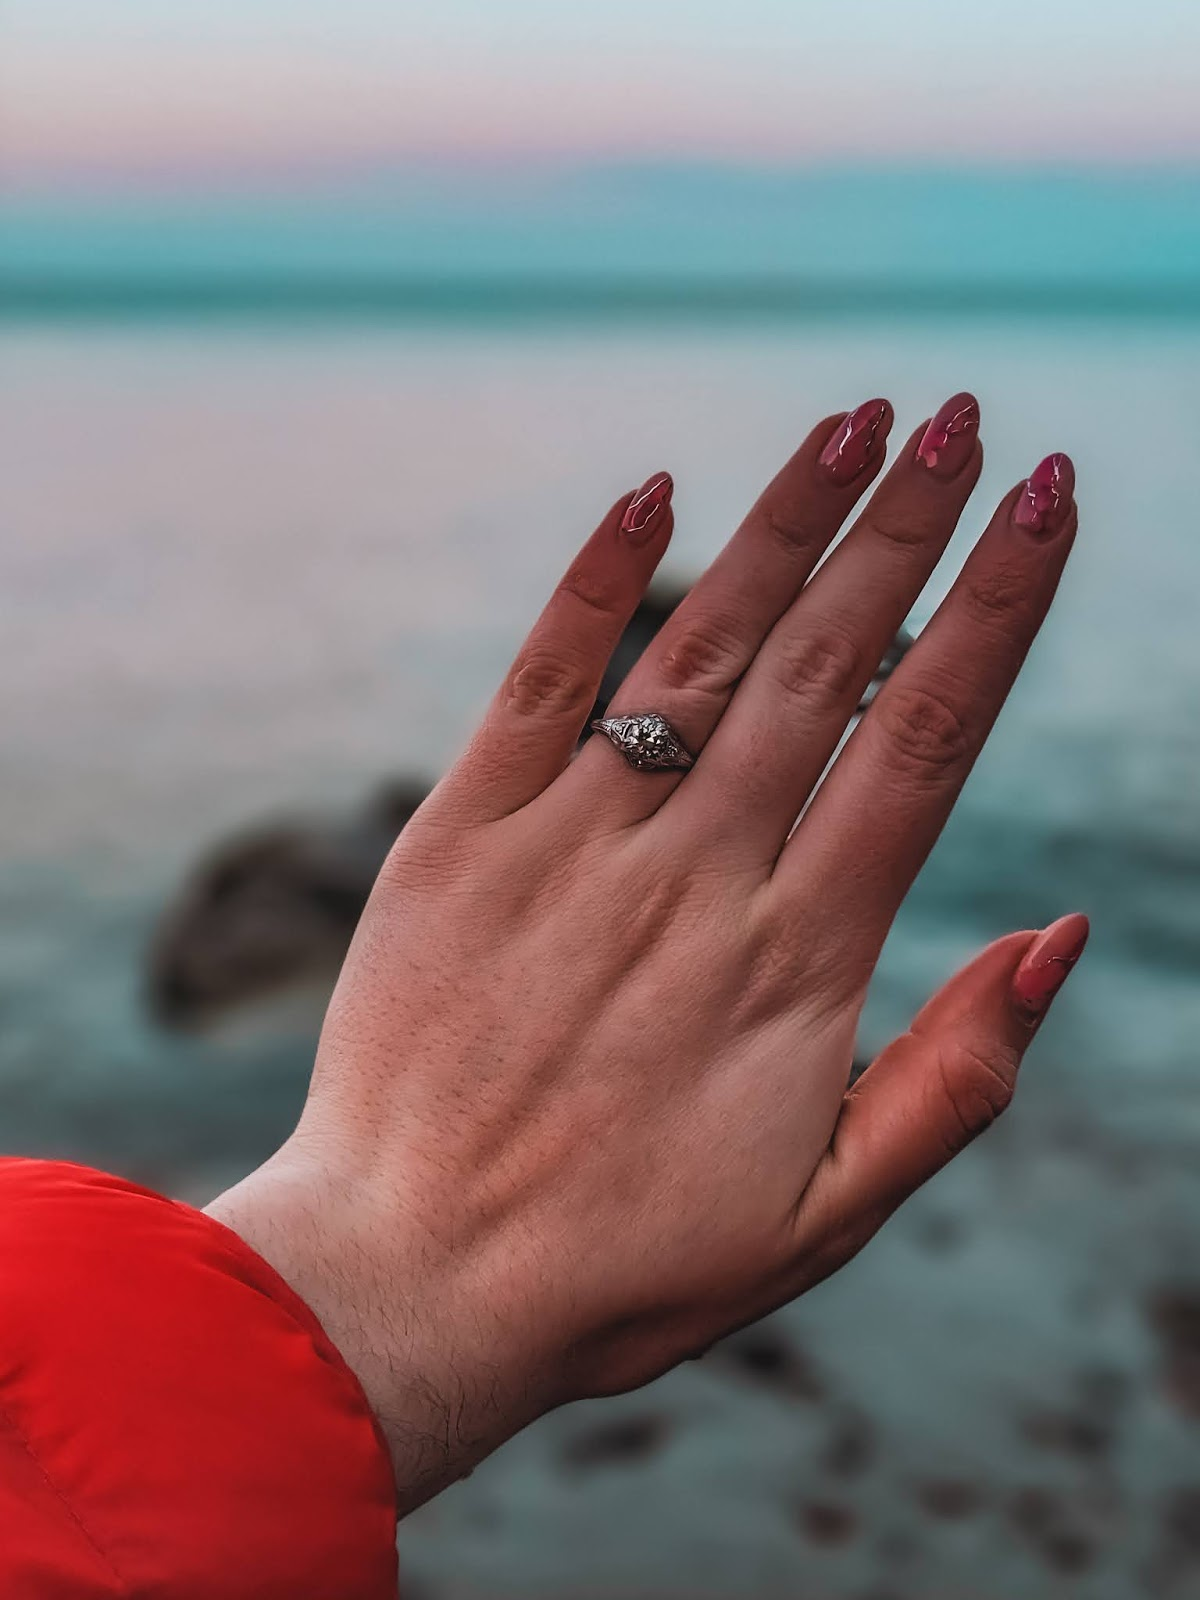 art deco engagement ring beach sunset manicure sea